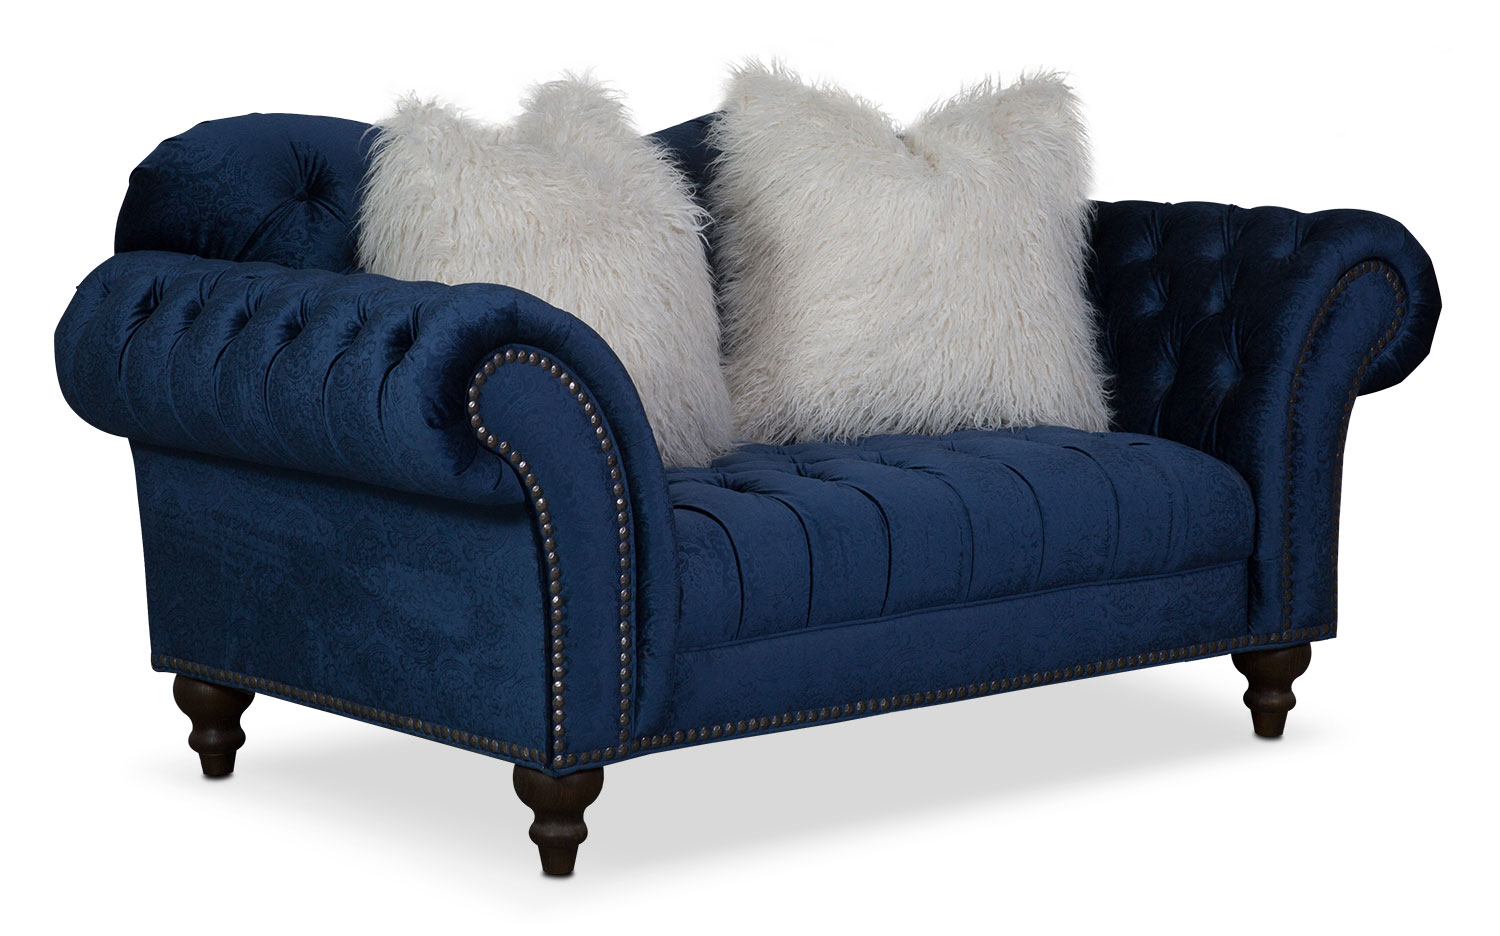 Living Room Furniture - Brittney Loveseat - Navy